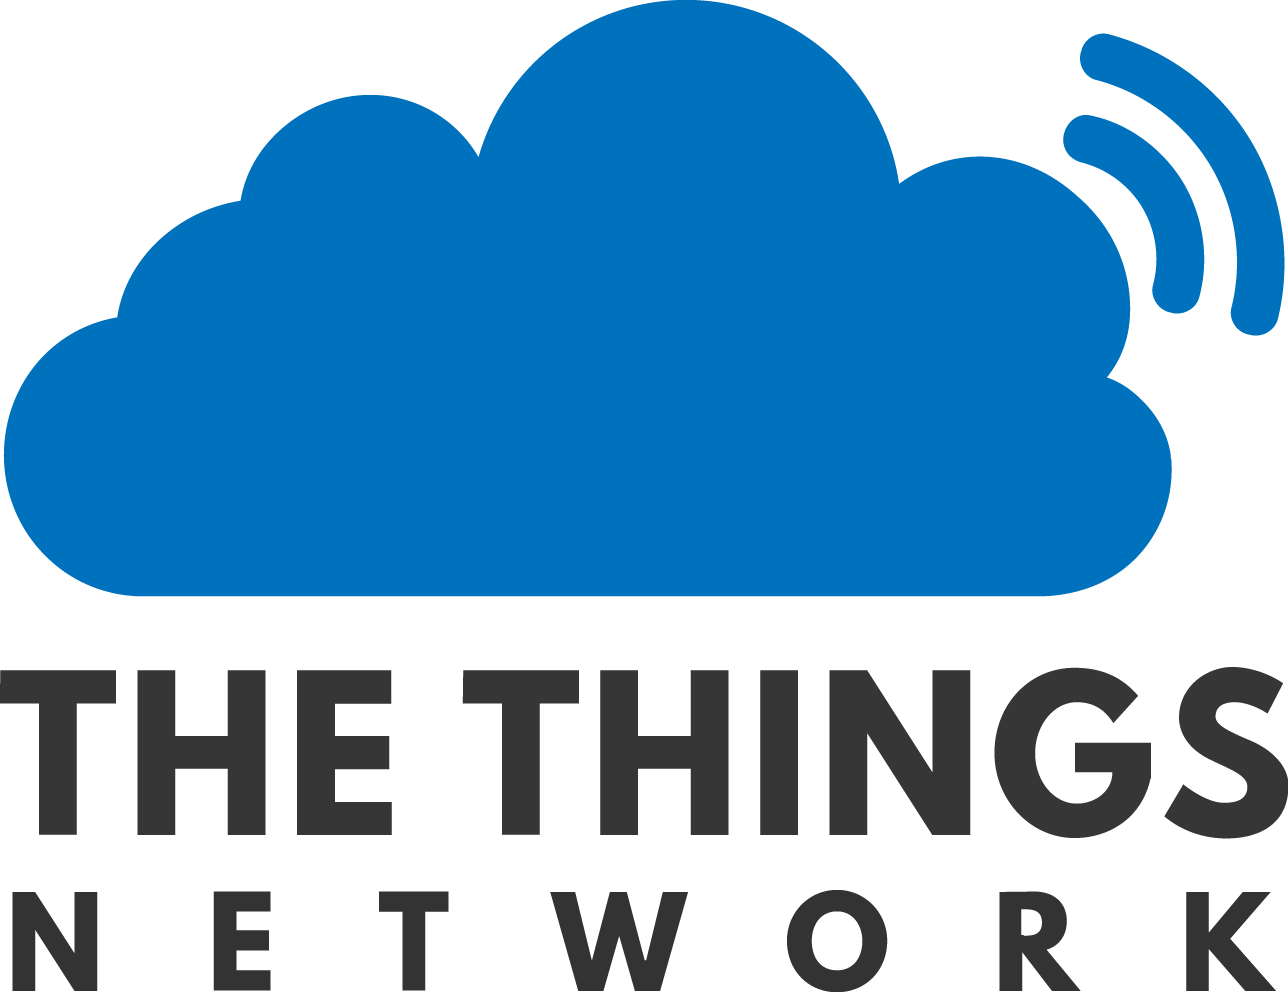 The Things Network Newcastle & Lake Macquarie - The Things Network is a global organisation providing Internet of Things connectivity via LoRaWAN, by crowdsourcing the network. We've helped initiate the Newcastle & Lake Macquarie community in becoming a proud participant in that movement.Find out more about this project.